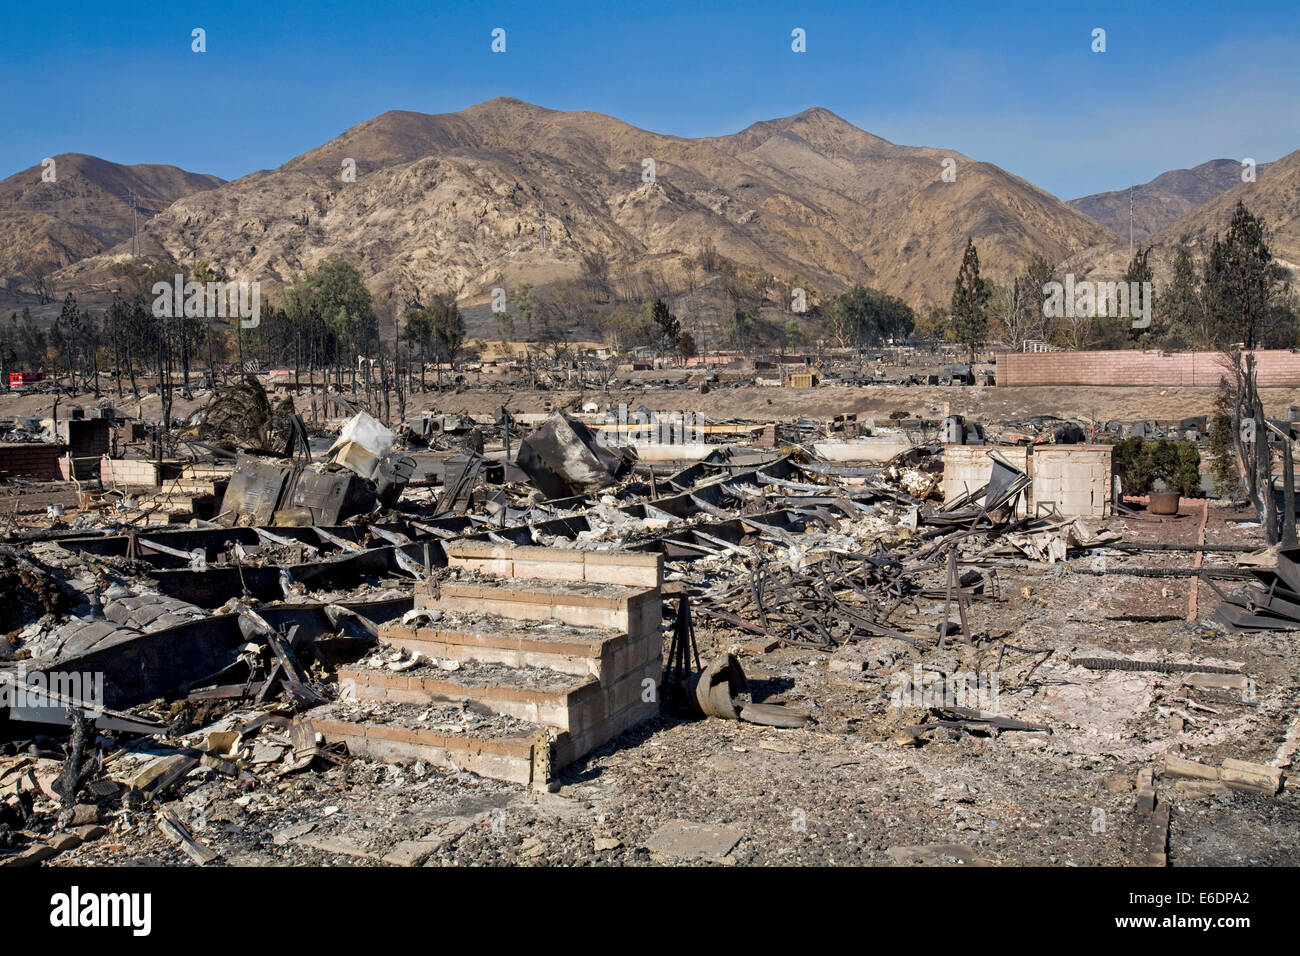 Oakridge Trailer Park devastated after Sylmar Wildfire in November 2008, California, USA. Stock Photo